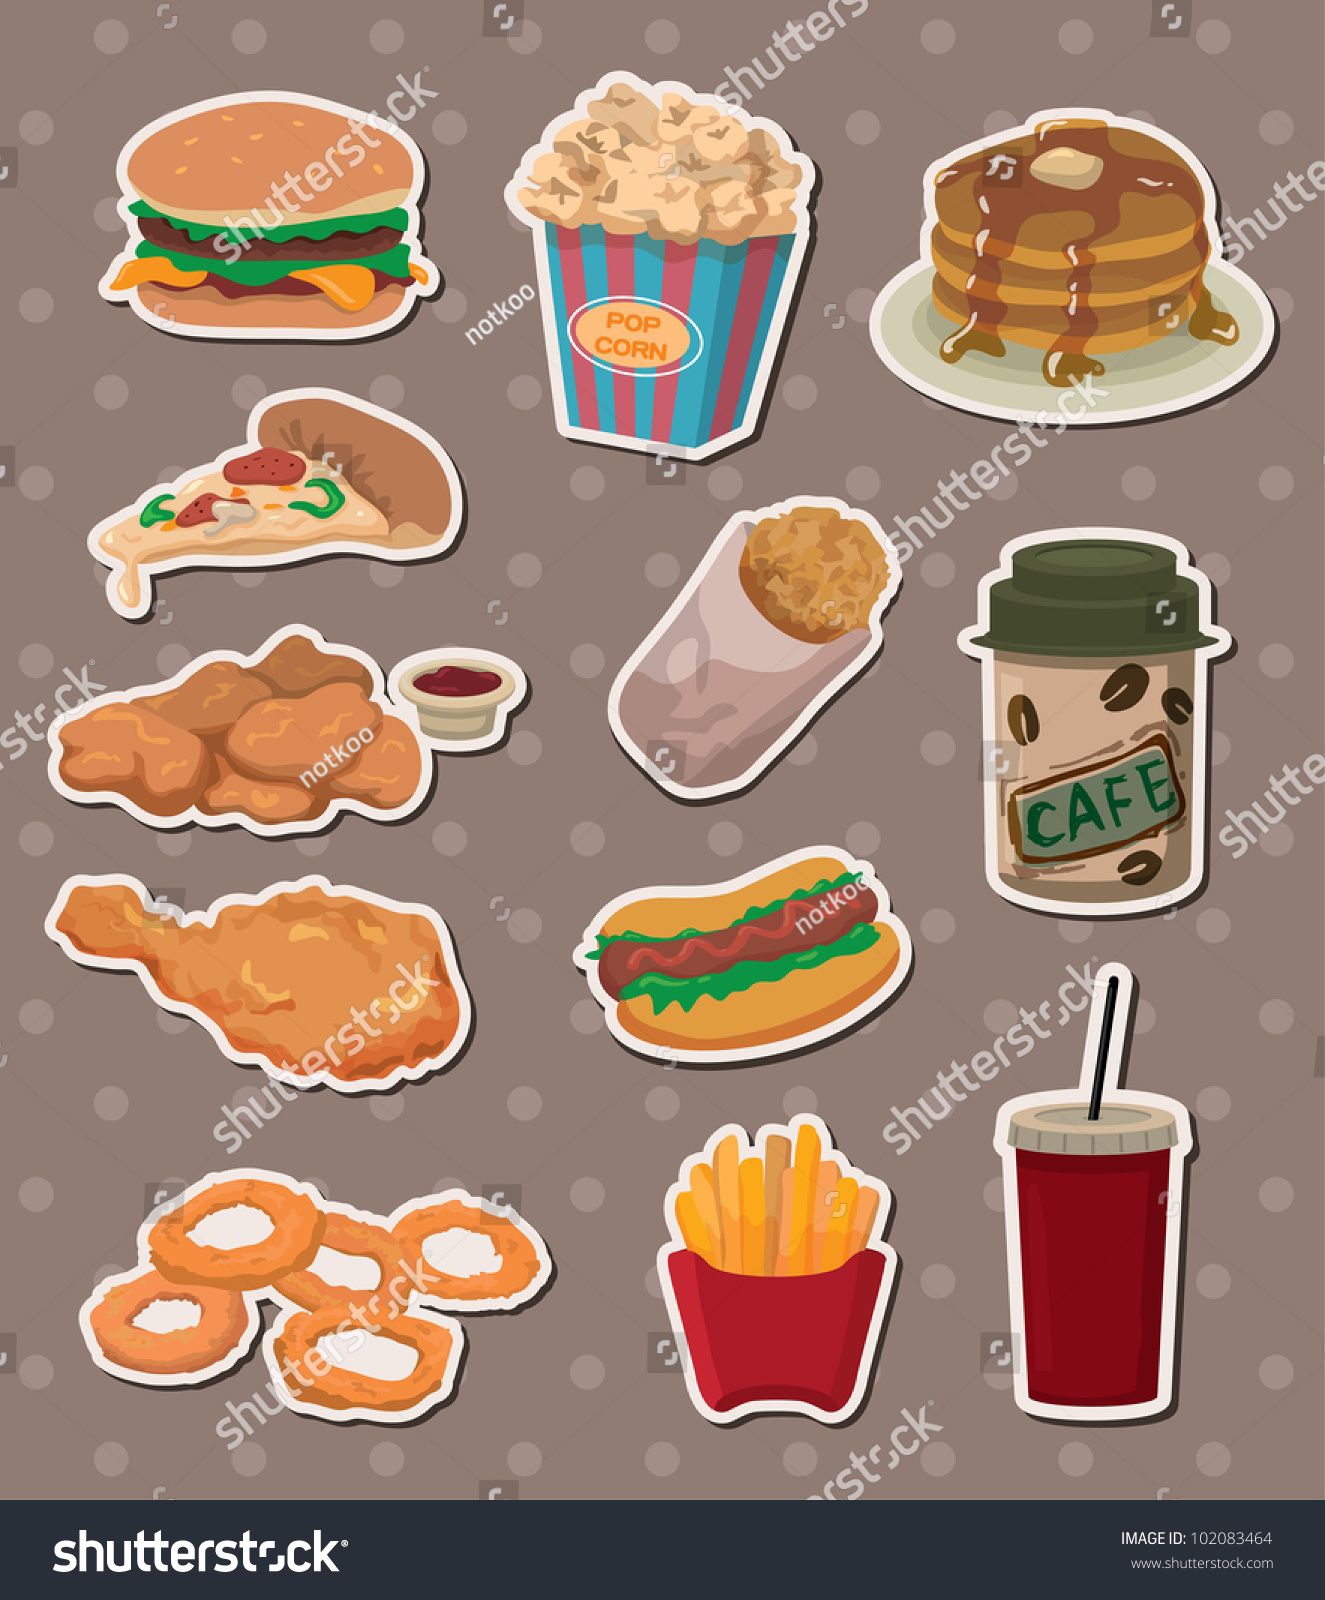 Fast Food Stickers Stock Vector Illustration 102083464